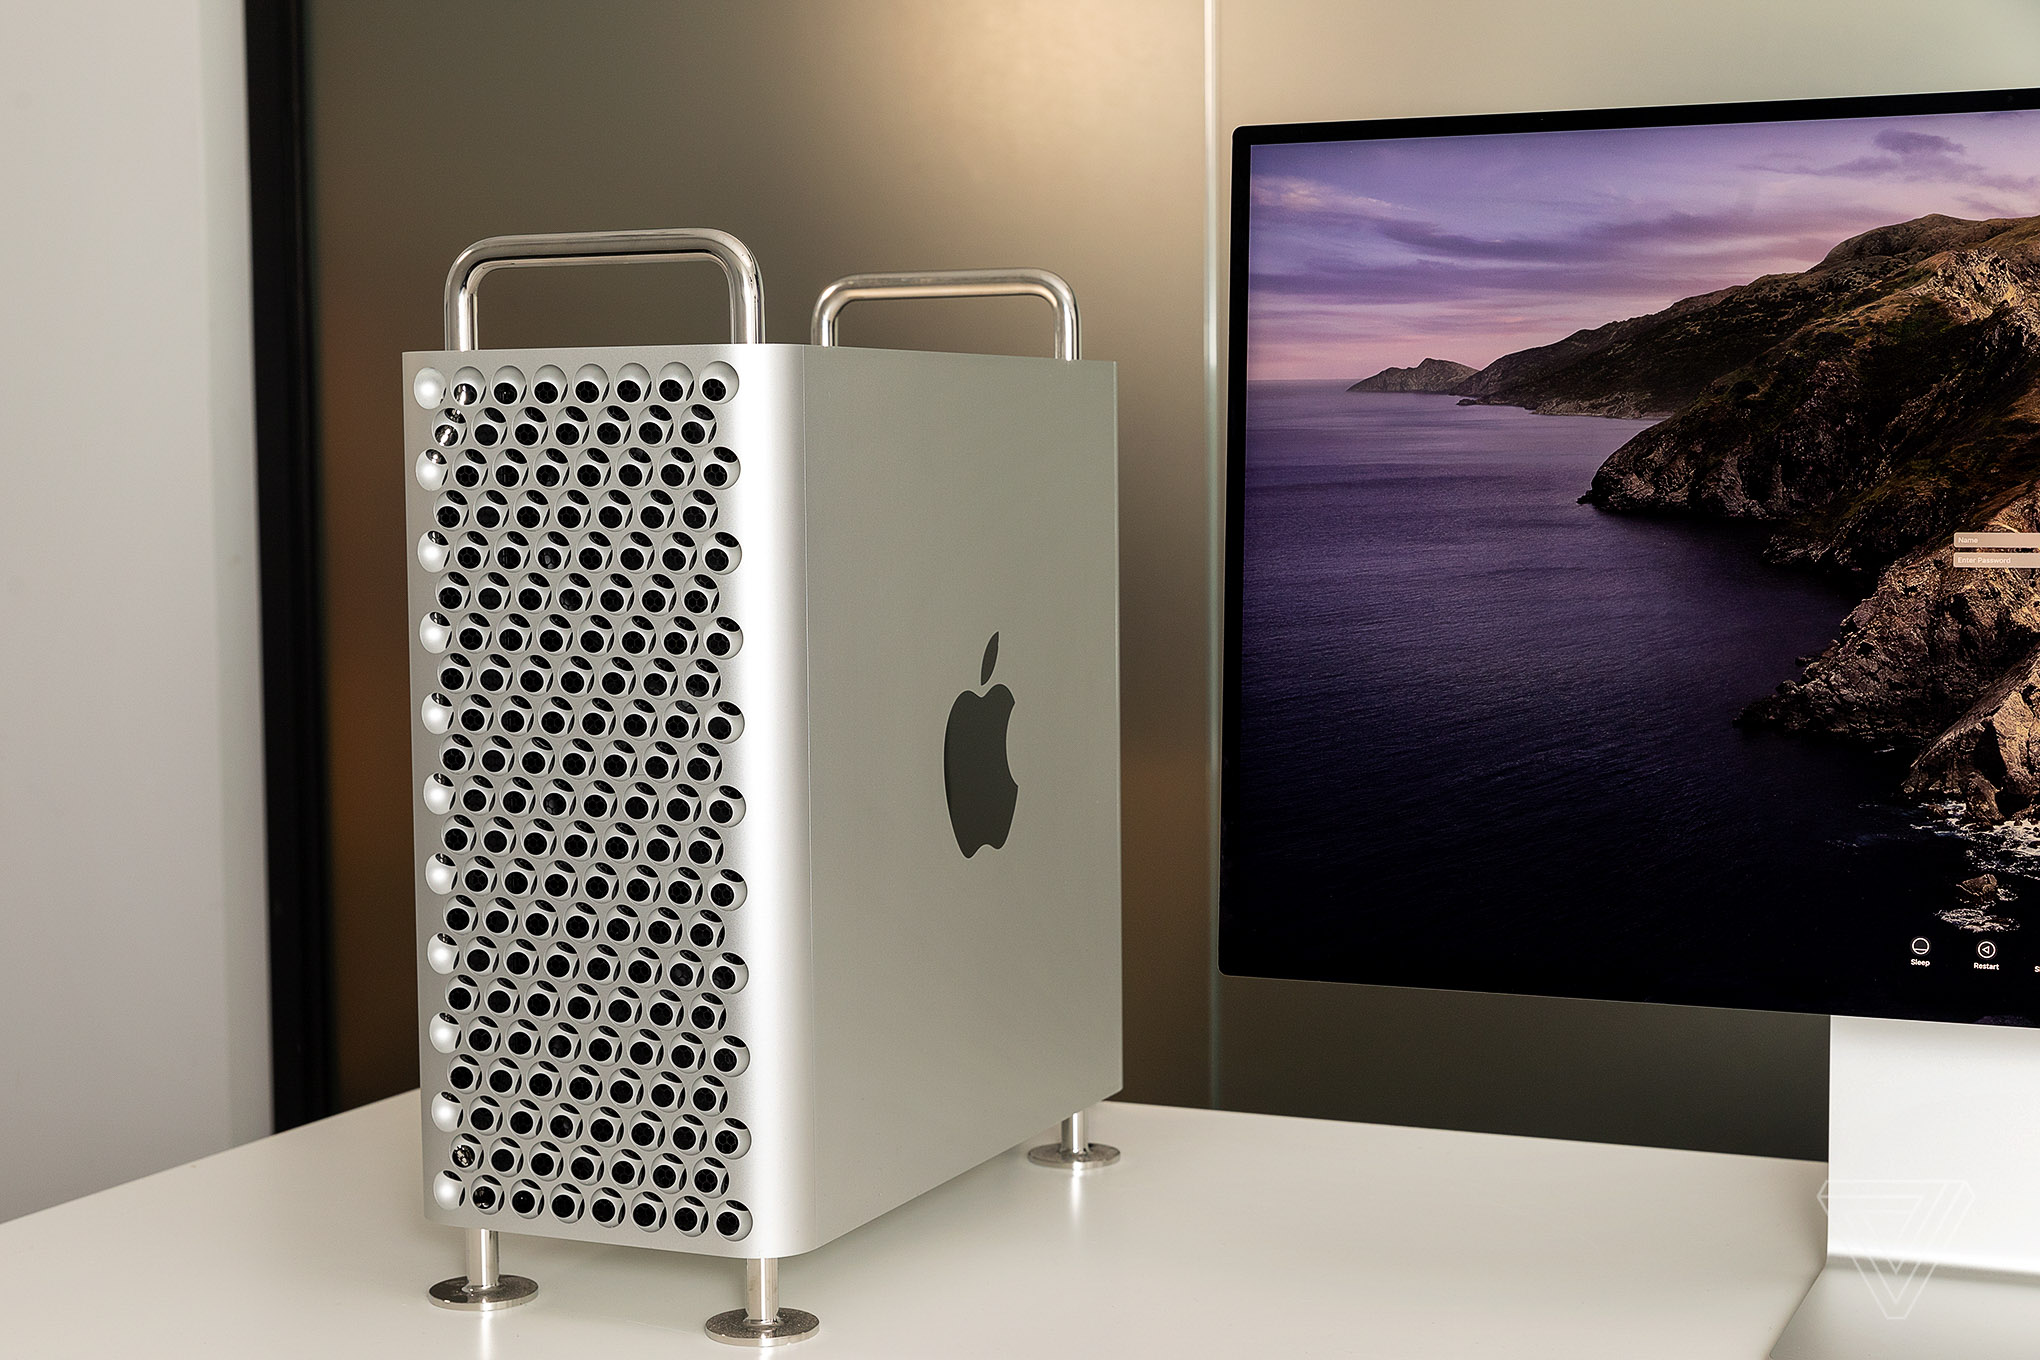 Apple first proposed self-service SSD upgrade kit for Mac Pro